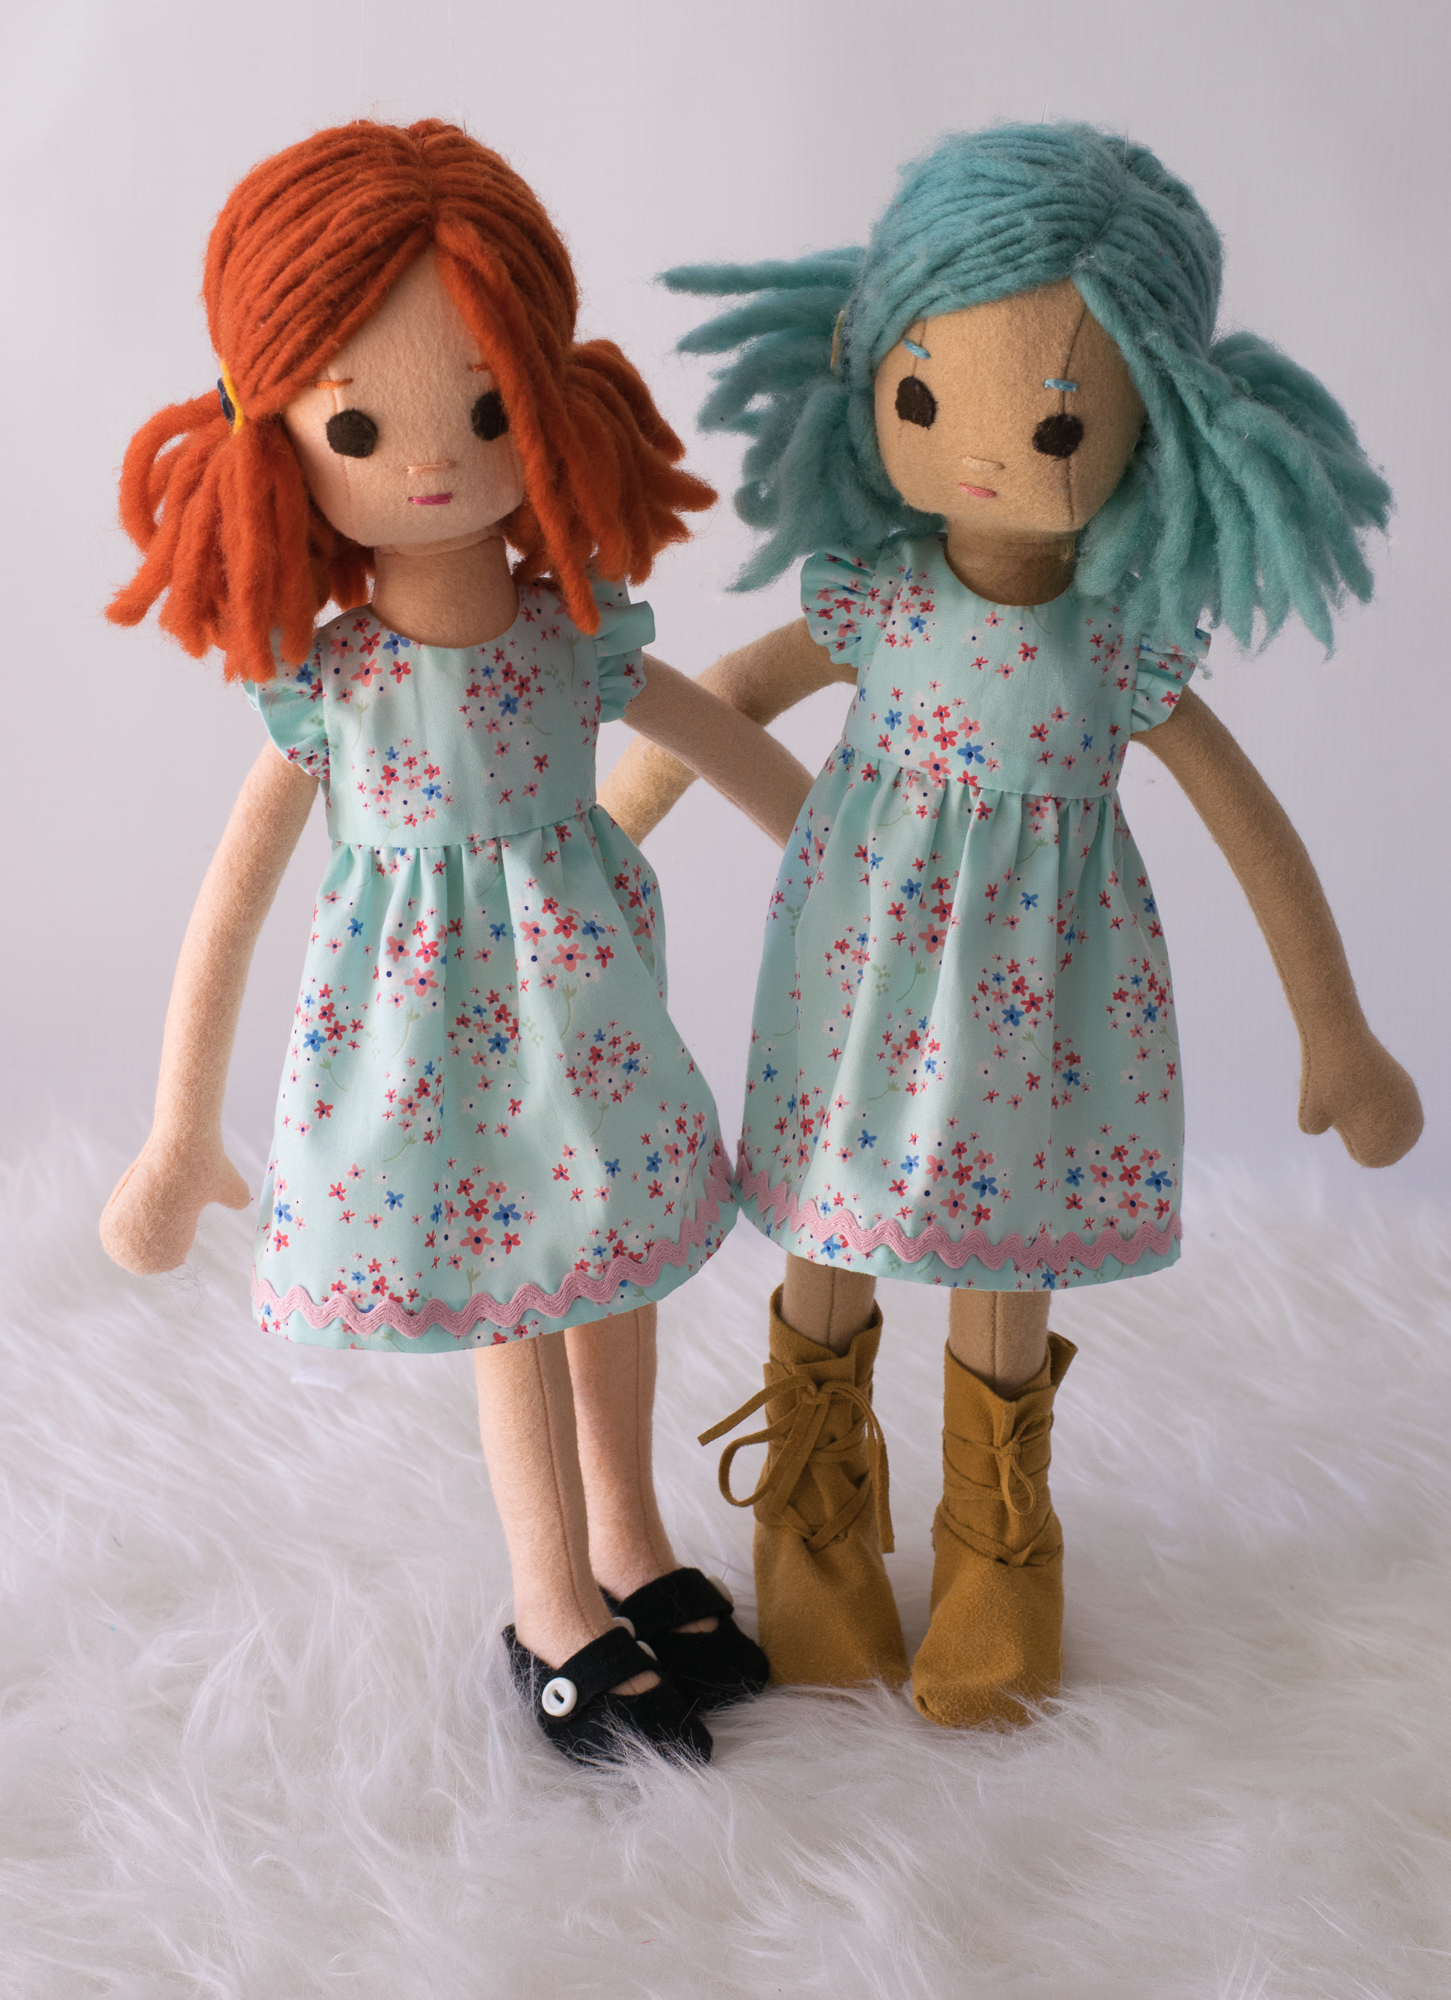 Matching dresses by Maggie